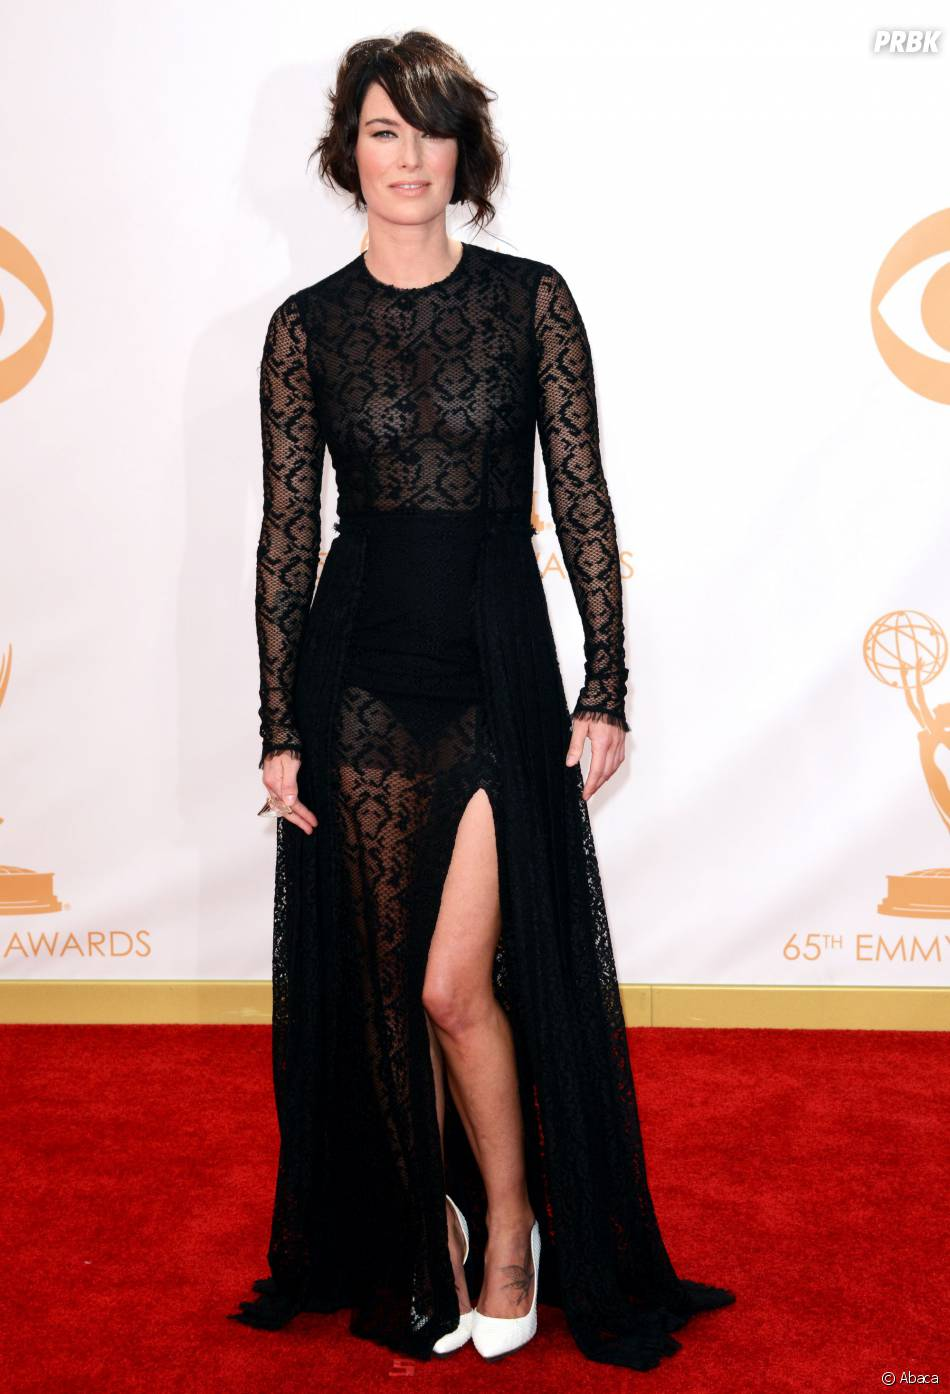 Lena Headey aux Emmy Awards 2013 le 22 septembre 2013 à Los Angeles